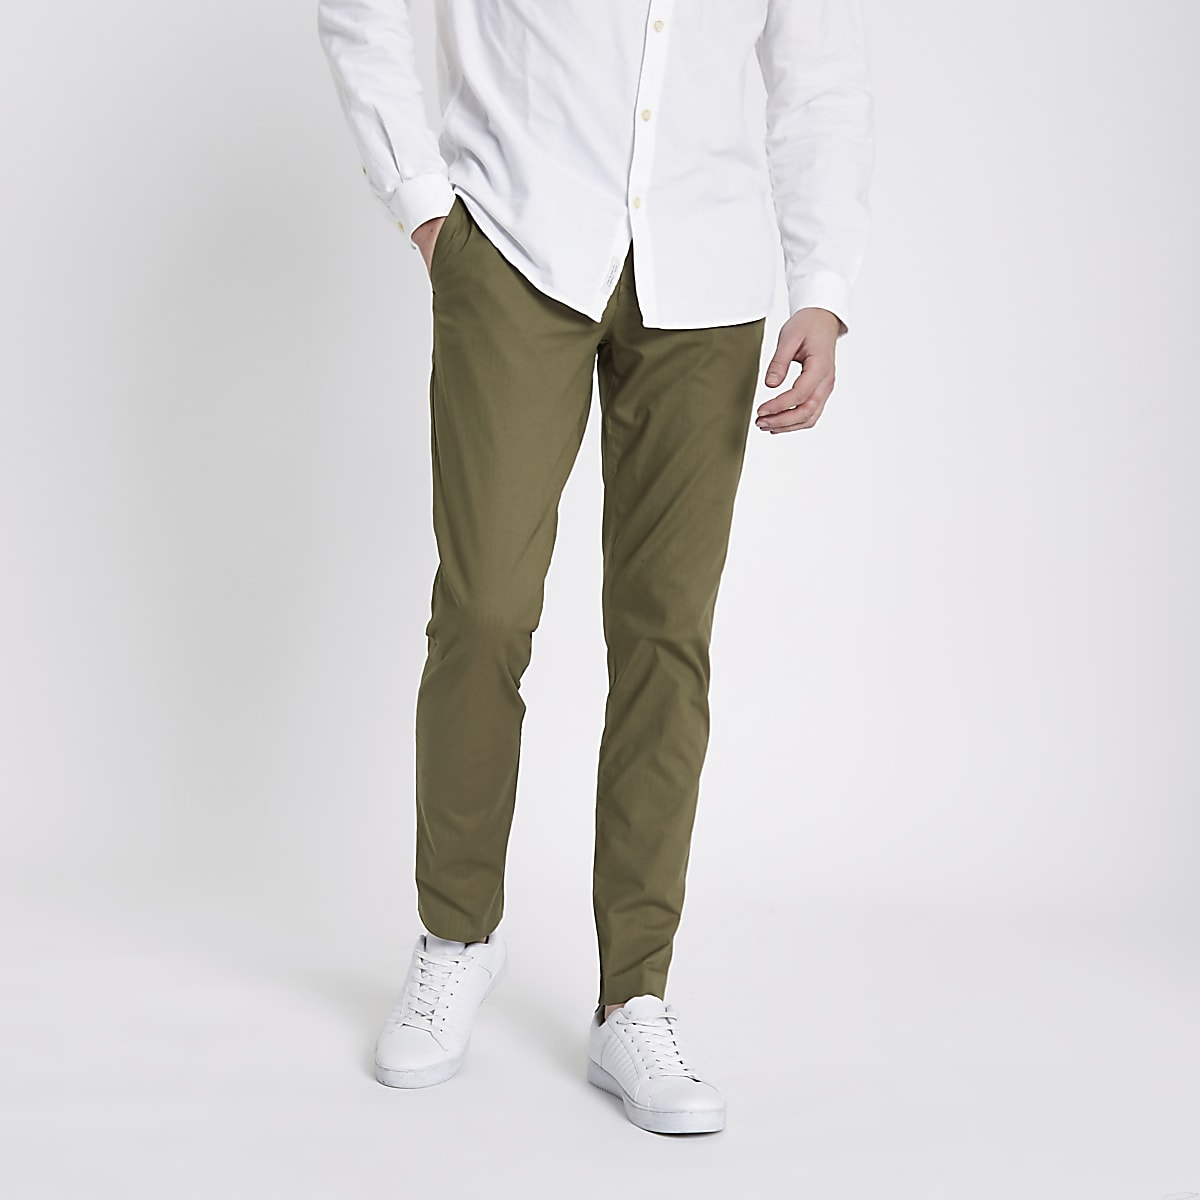 Khaki green slim fit chino pants